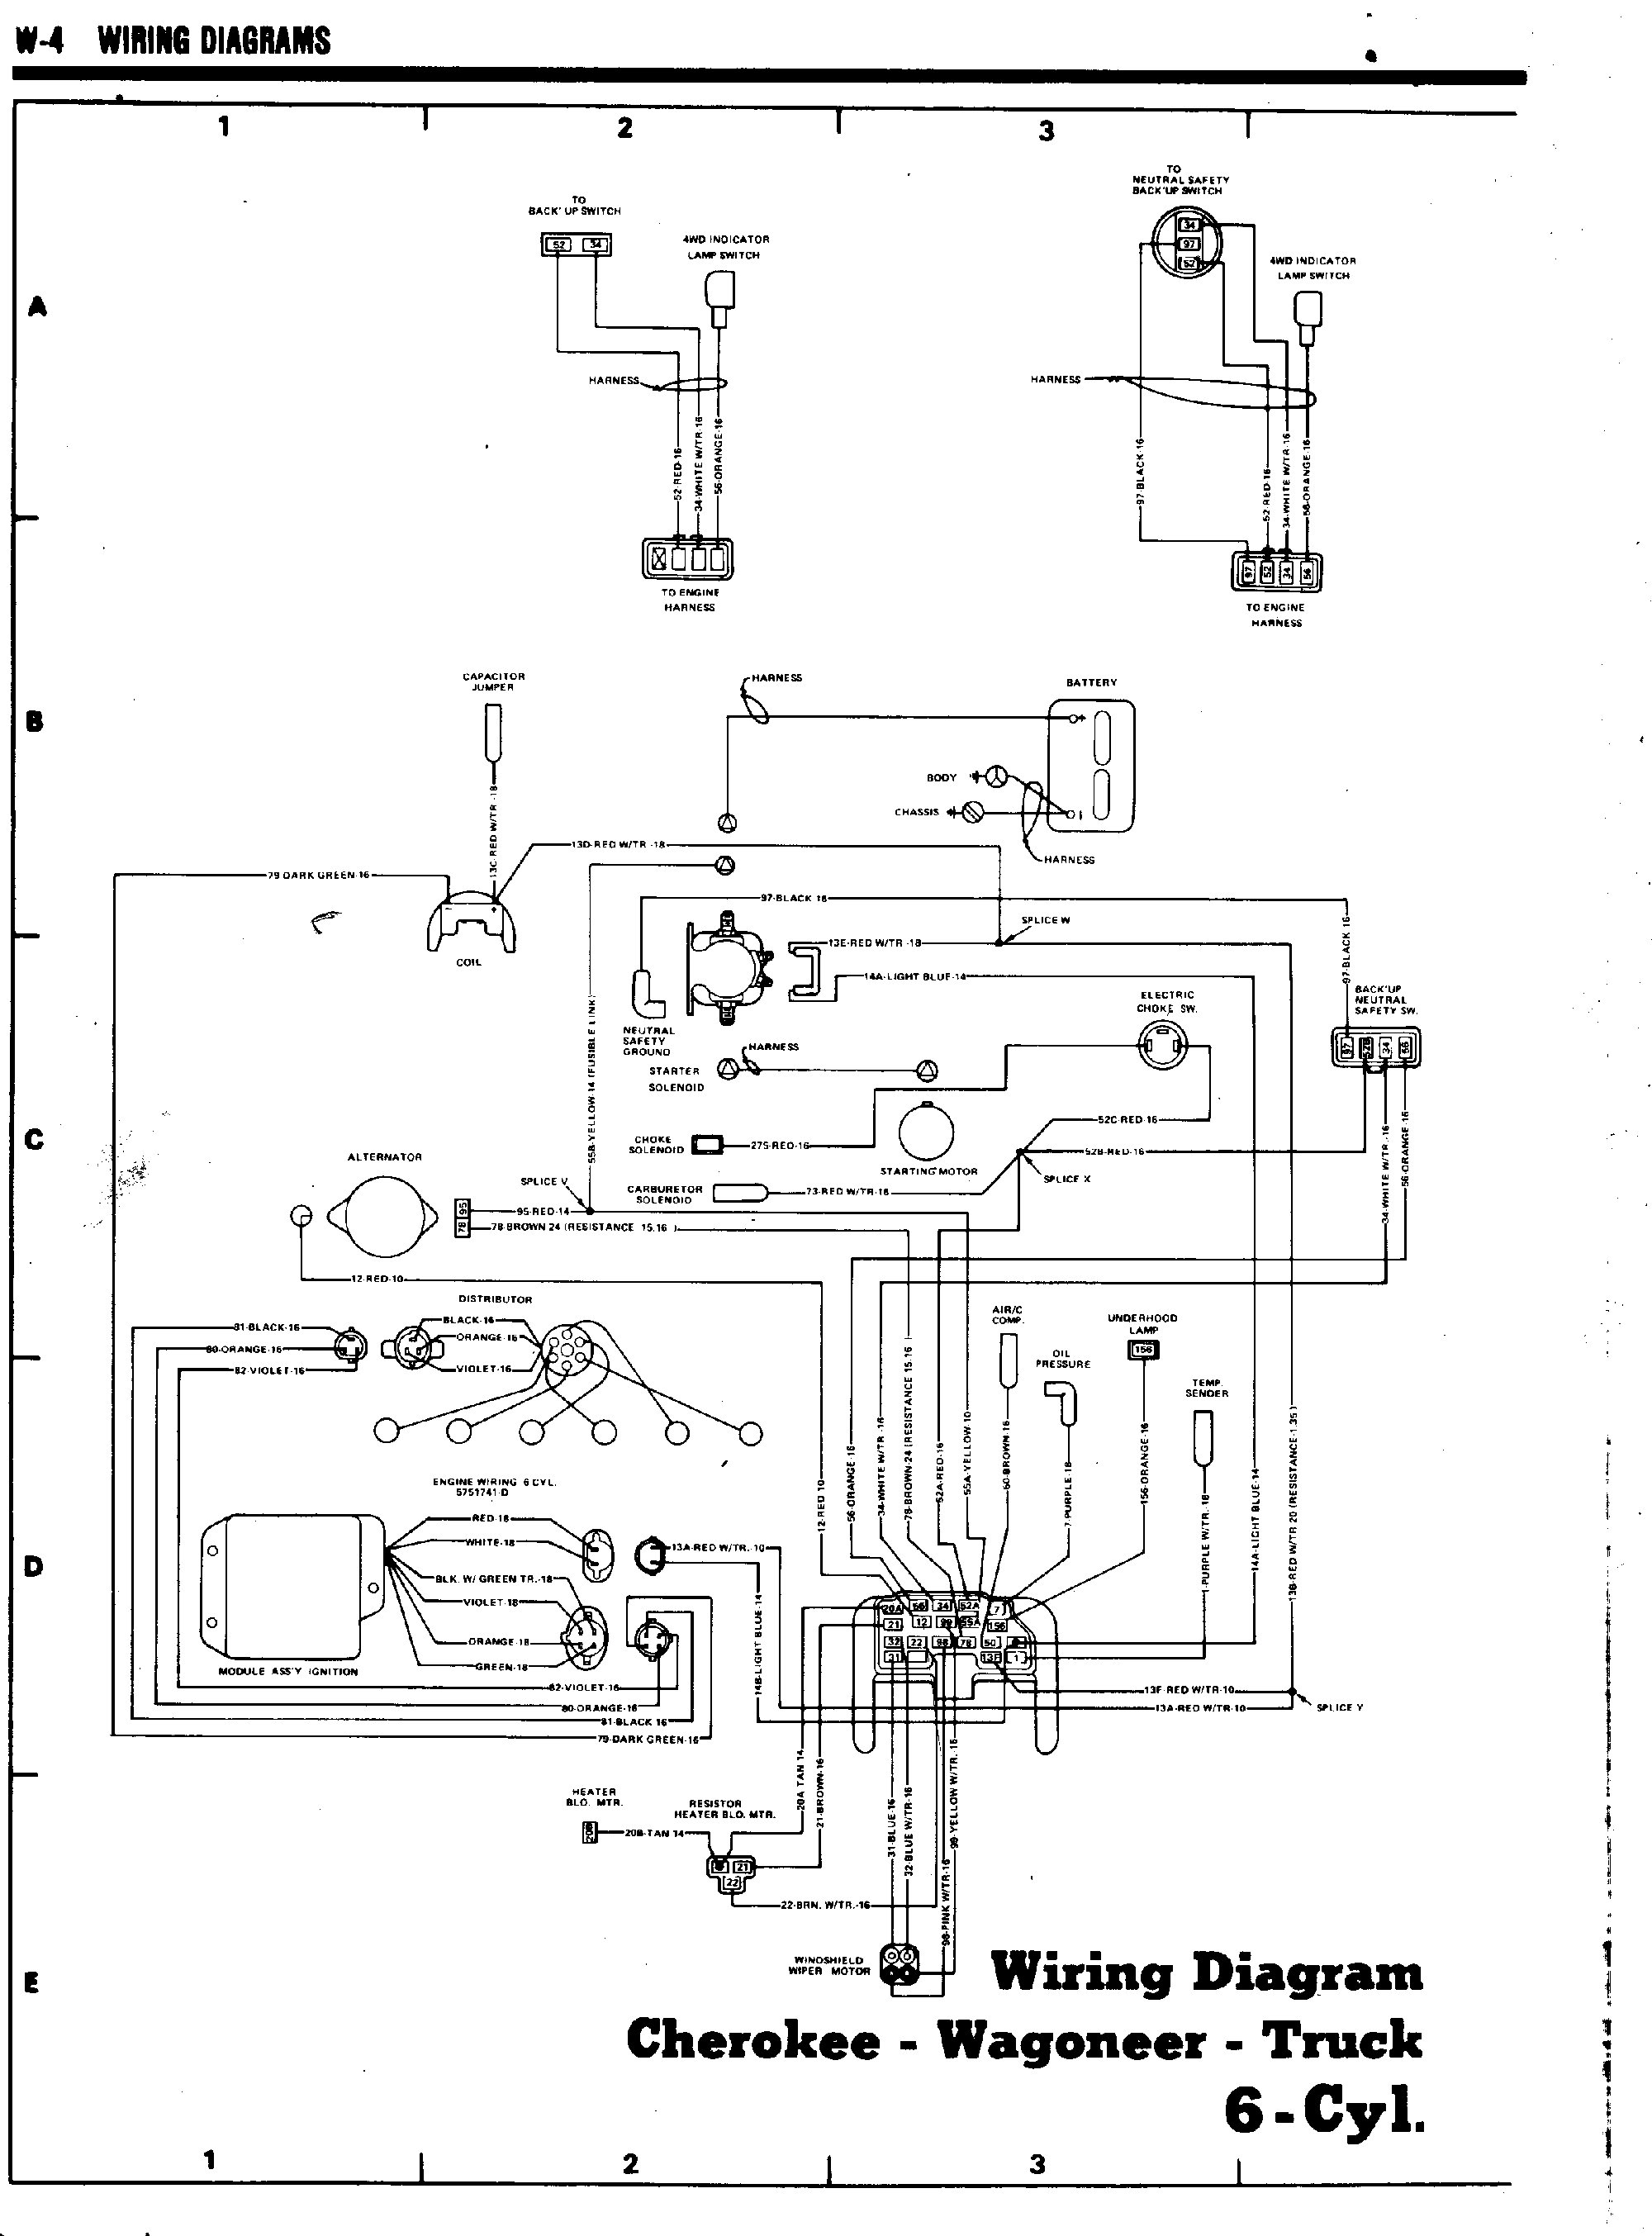 [SCHEMATICS_48DE]  Tom 'Oljeep' Collins FSJ Wiring Page | Wiring Diagram For 87 Grand Wagoneer |  | Oljeep